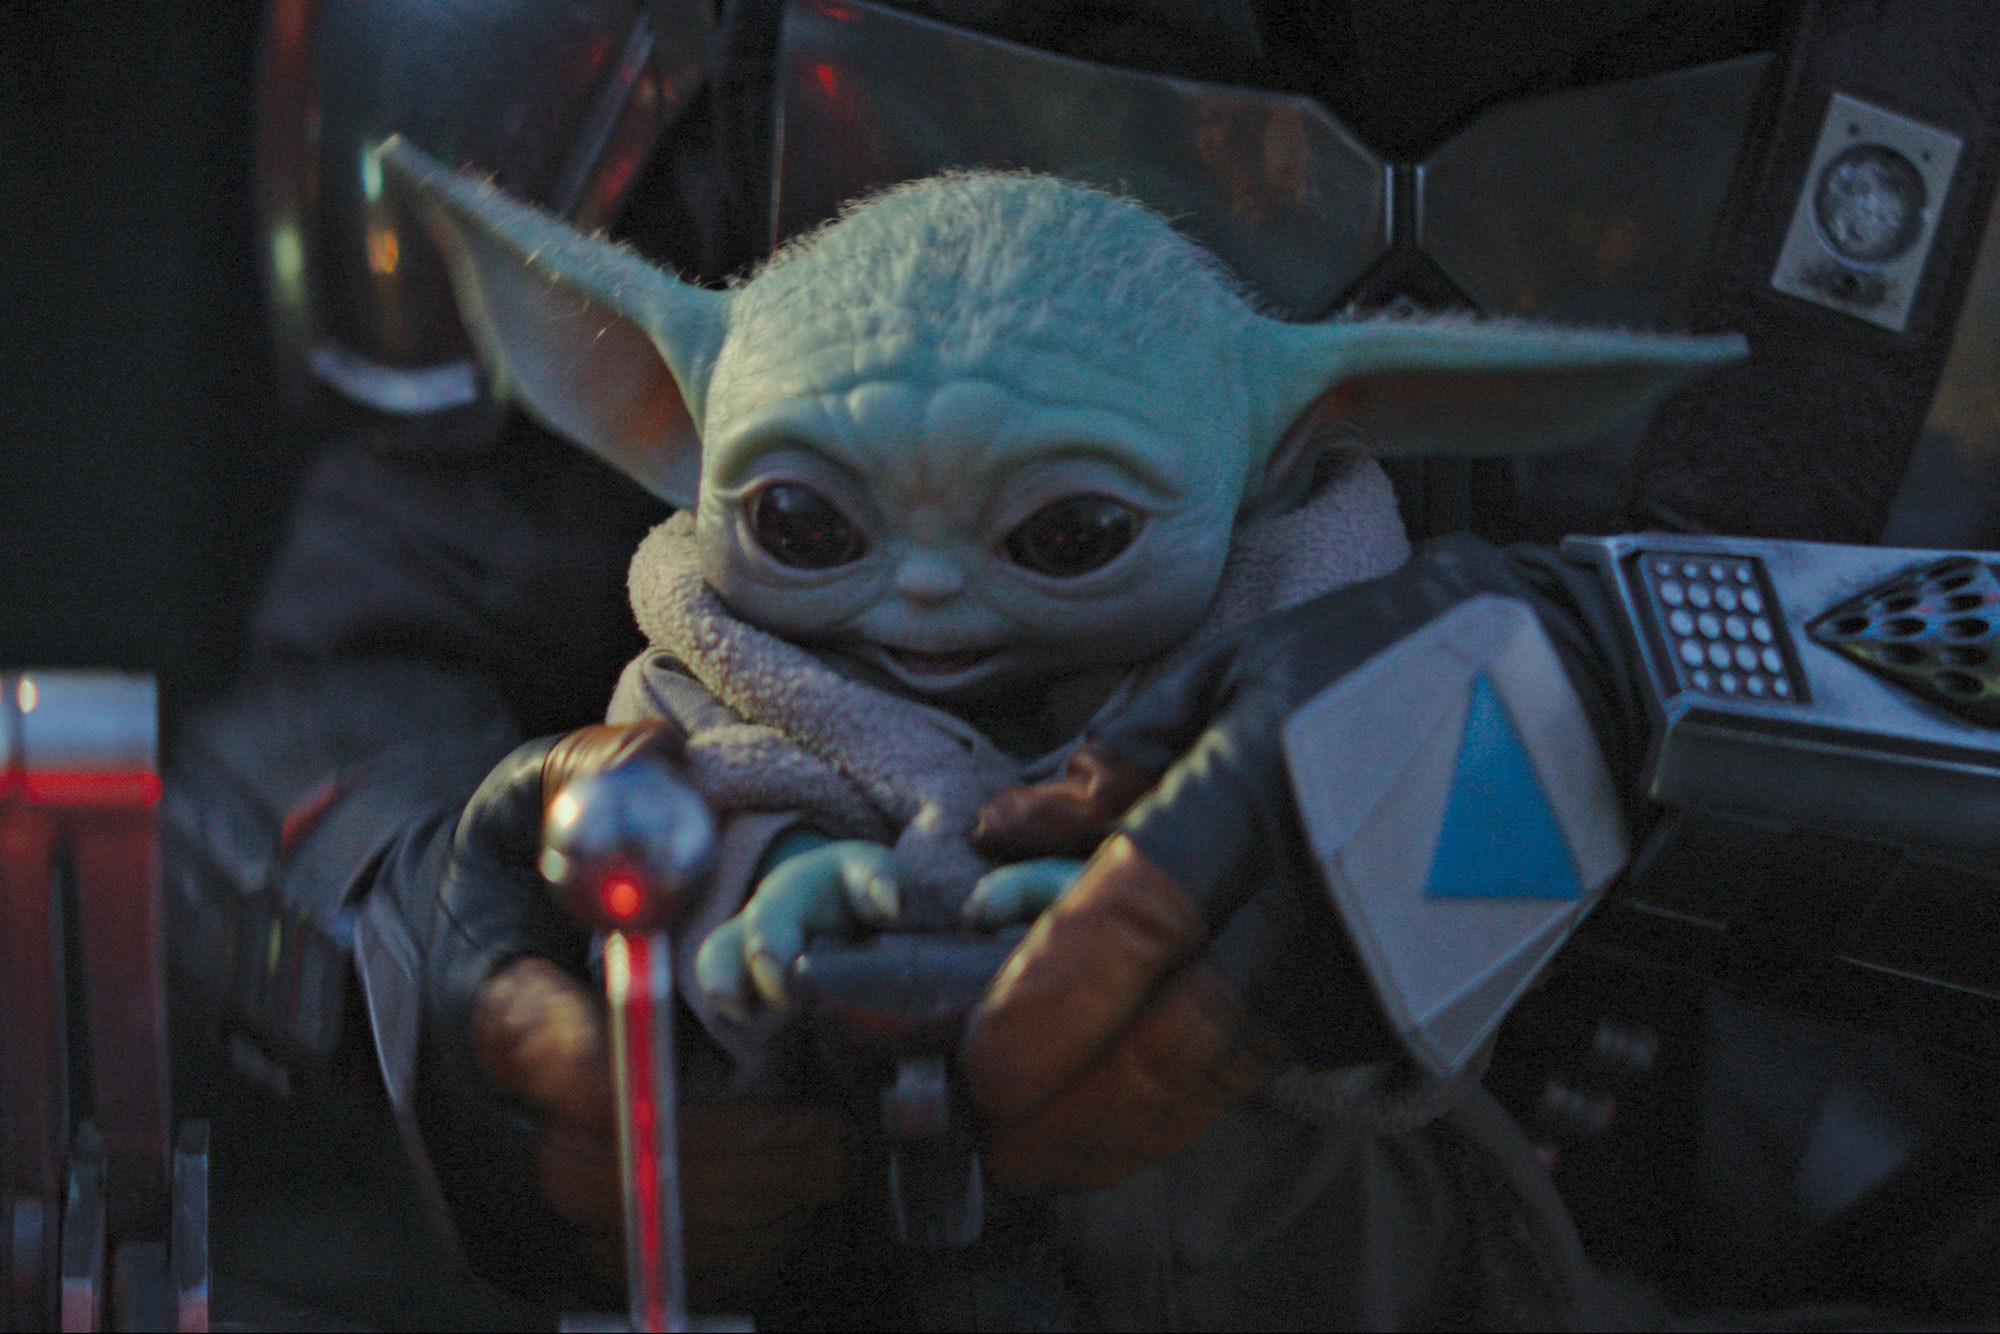 A close shot of Baby Yoda from the Disney+ show 'The Mandalorian'